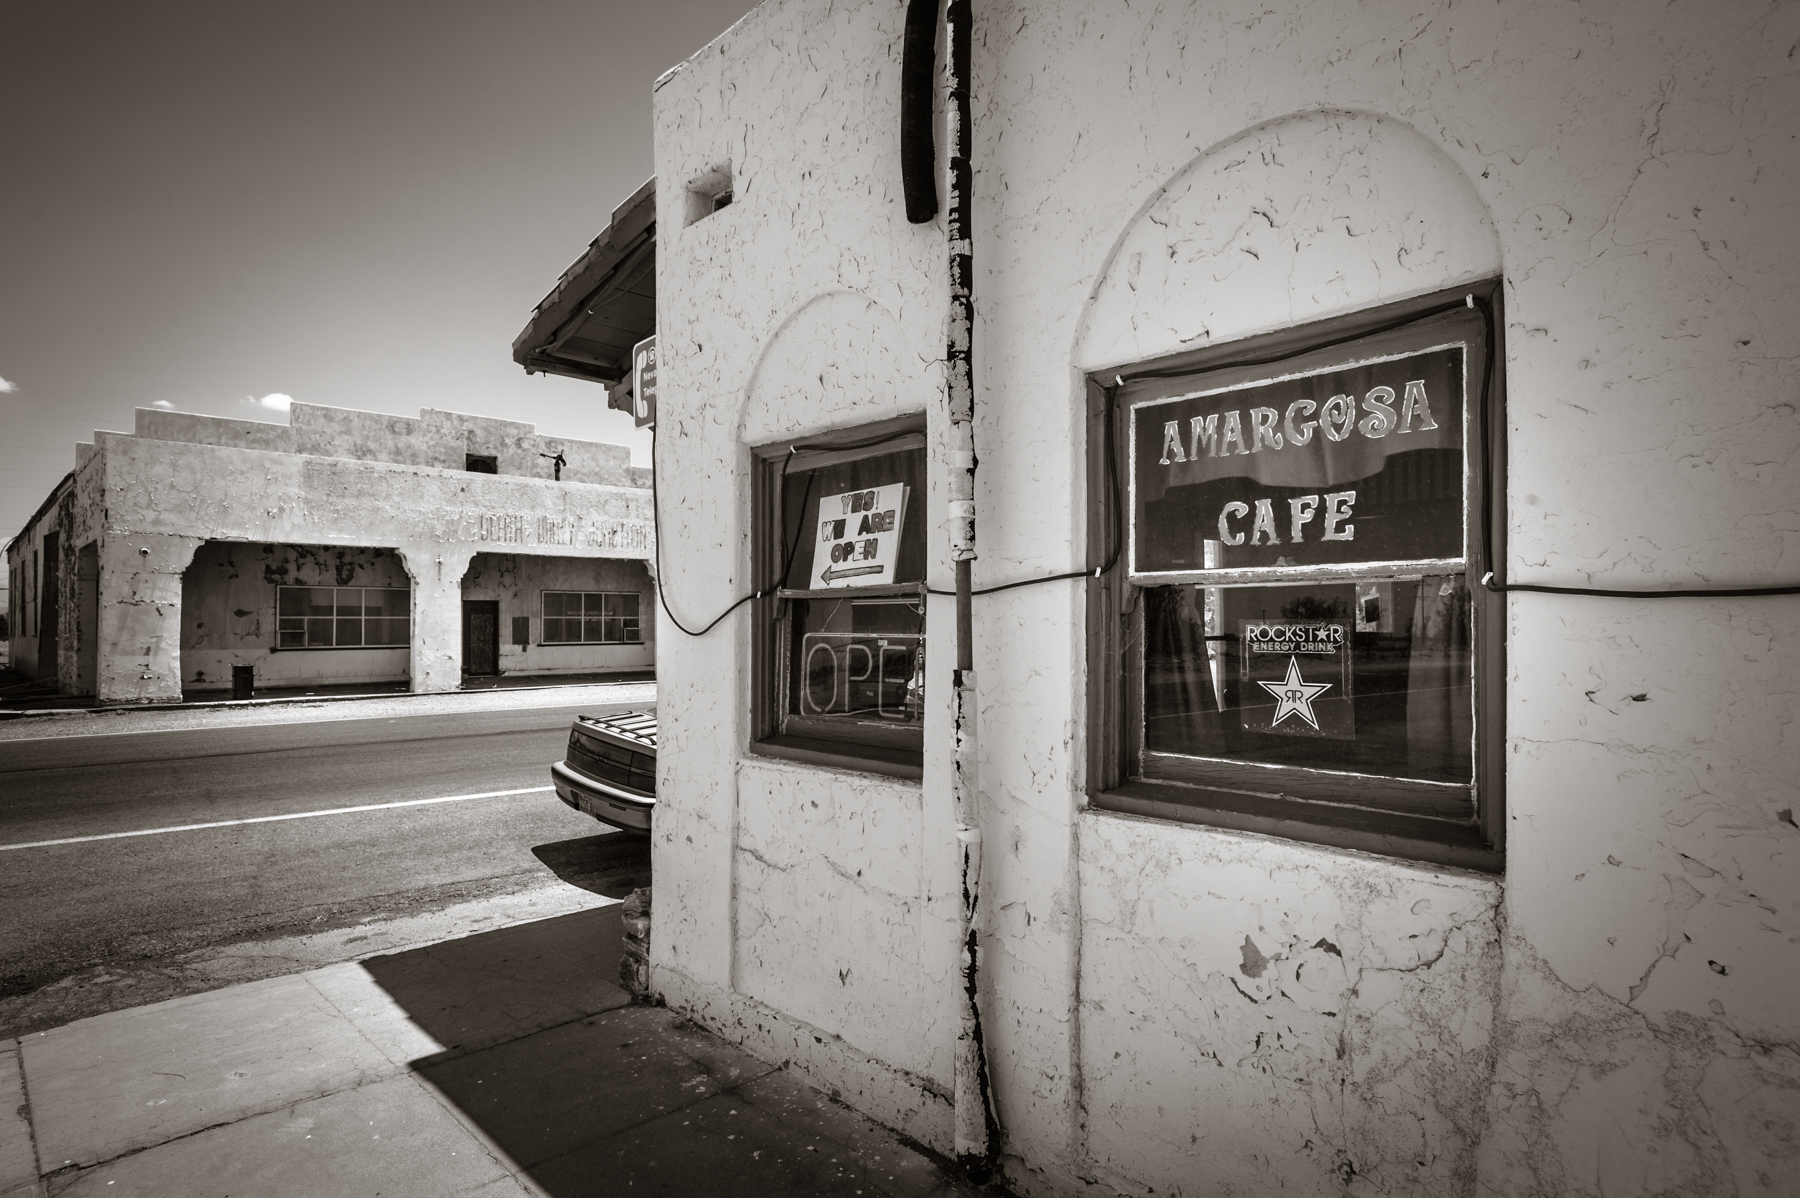 Amargosa Cafe  Death Valley Junction, CA 2012